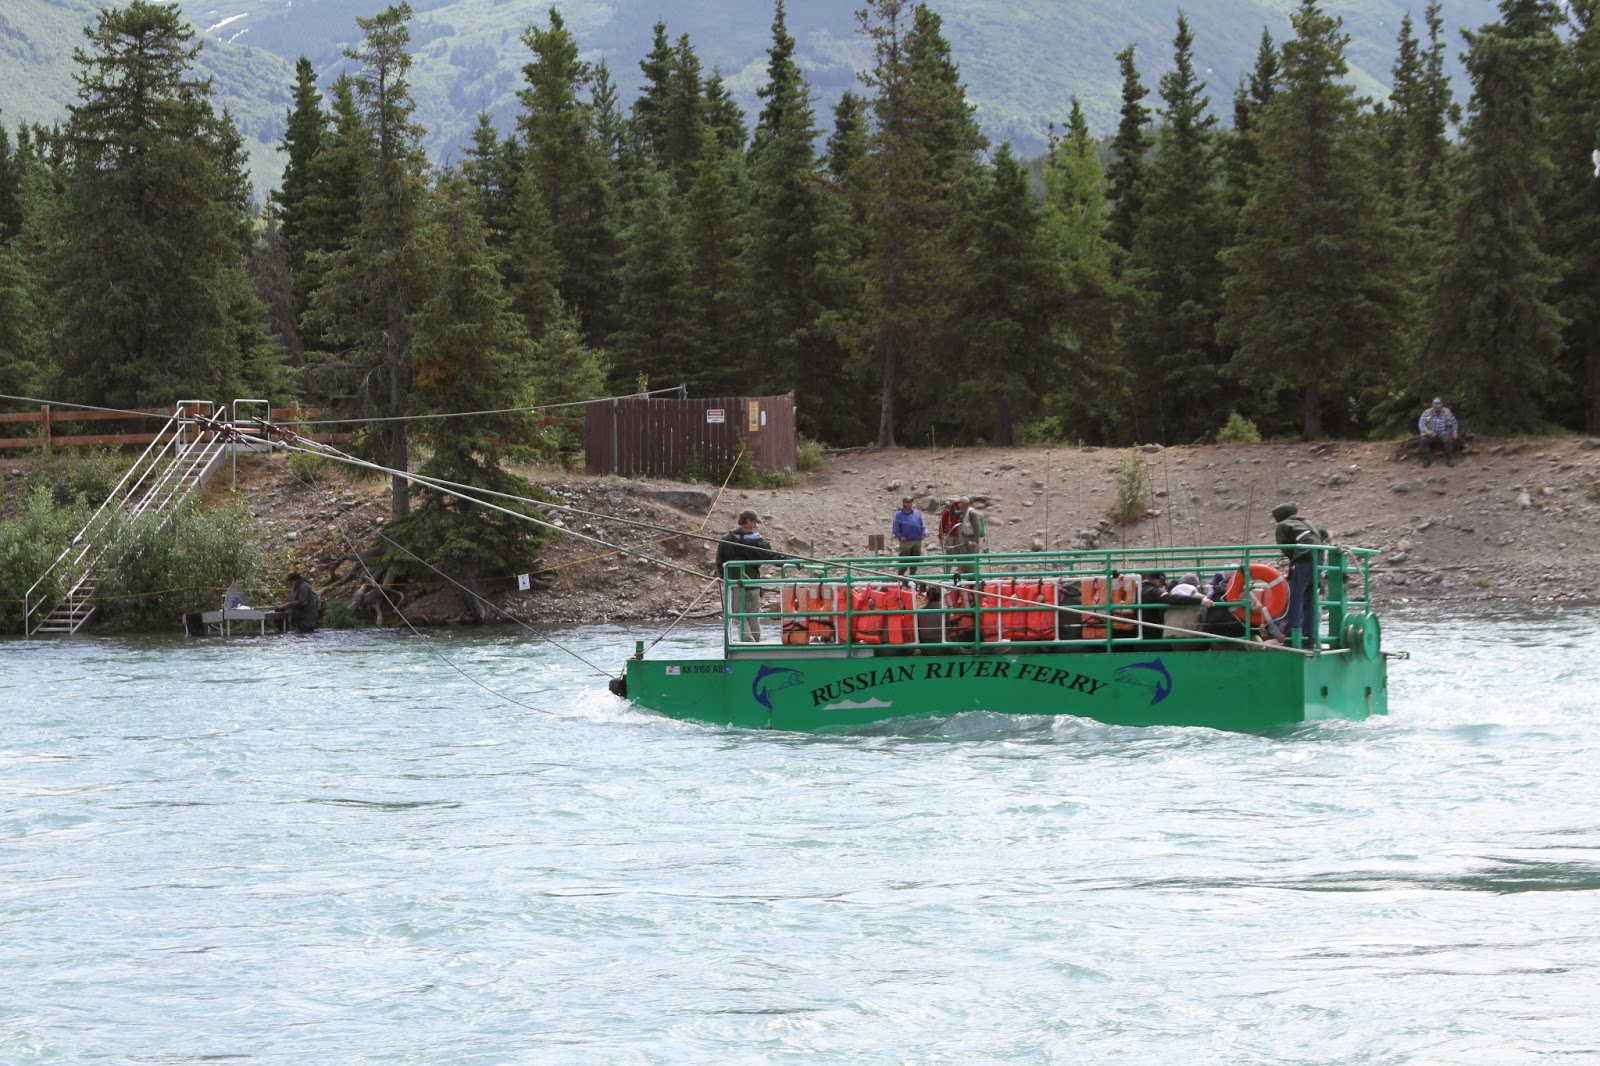 cooper landing singles over 50 Fishing, rafting, hiking: you'll find lots of things to do in the cooper landing area   expect an exciting day of fishing for salmon (red, silver, or king depending on.